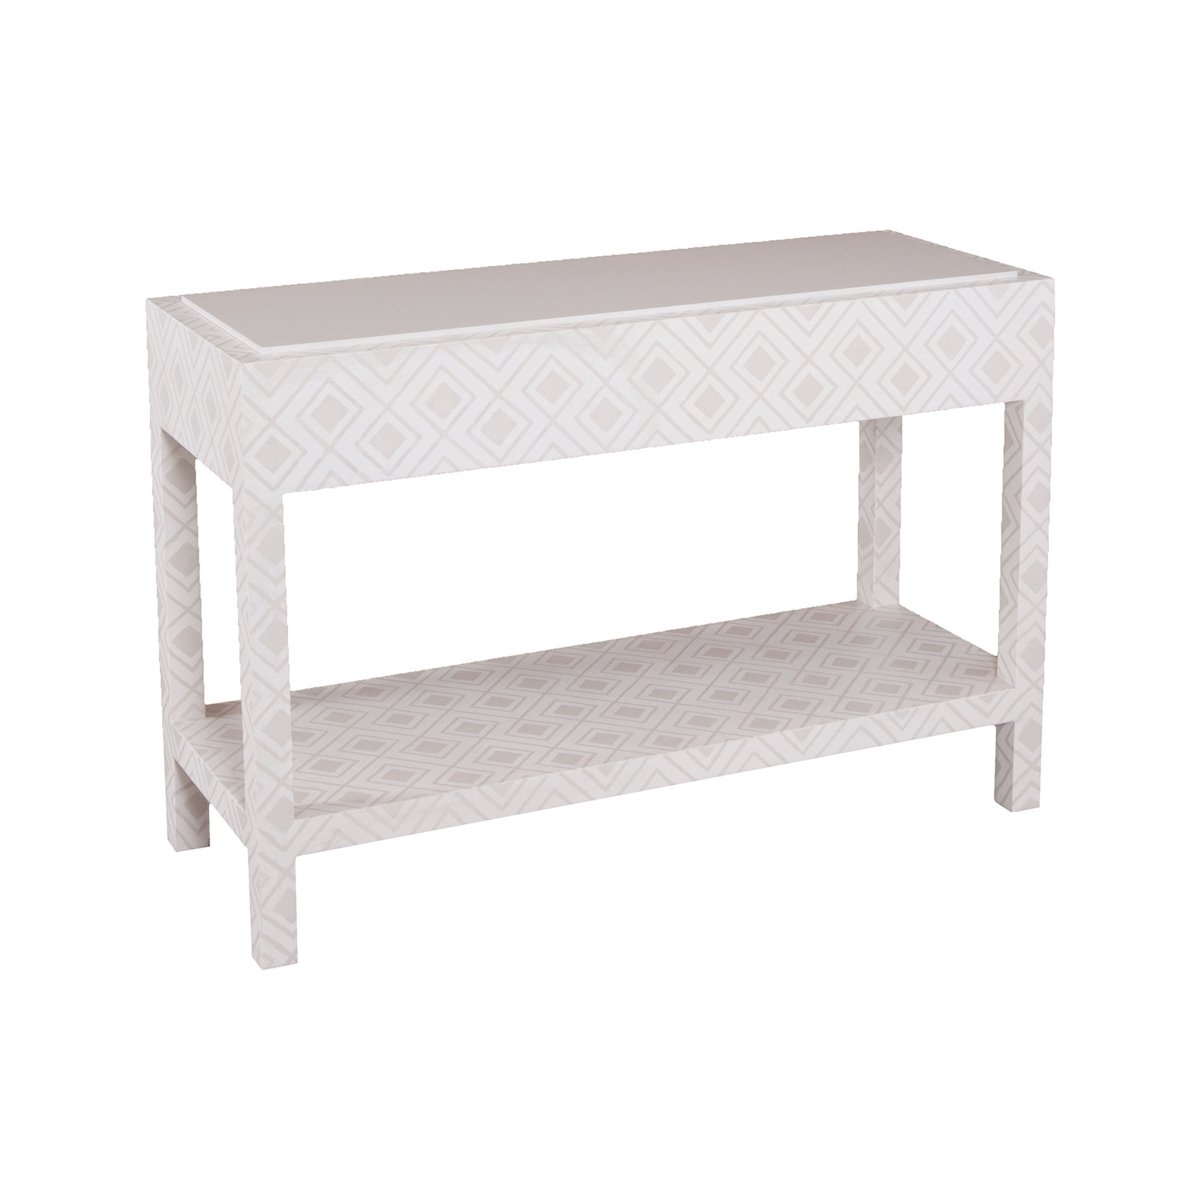 Kent Fabric Wrapped Console | Products In 2018 | Pinterest Intended For Parsons Concrete Top & Stainless Steel Base 48X16 Console Tables (View 10 of 20)